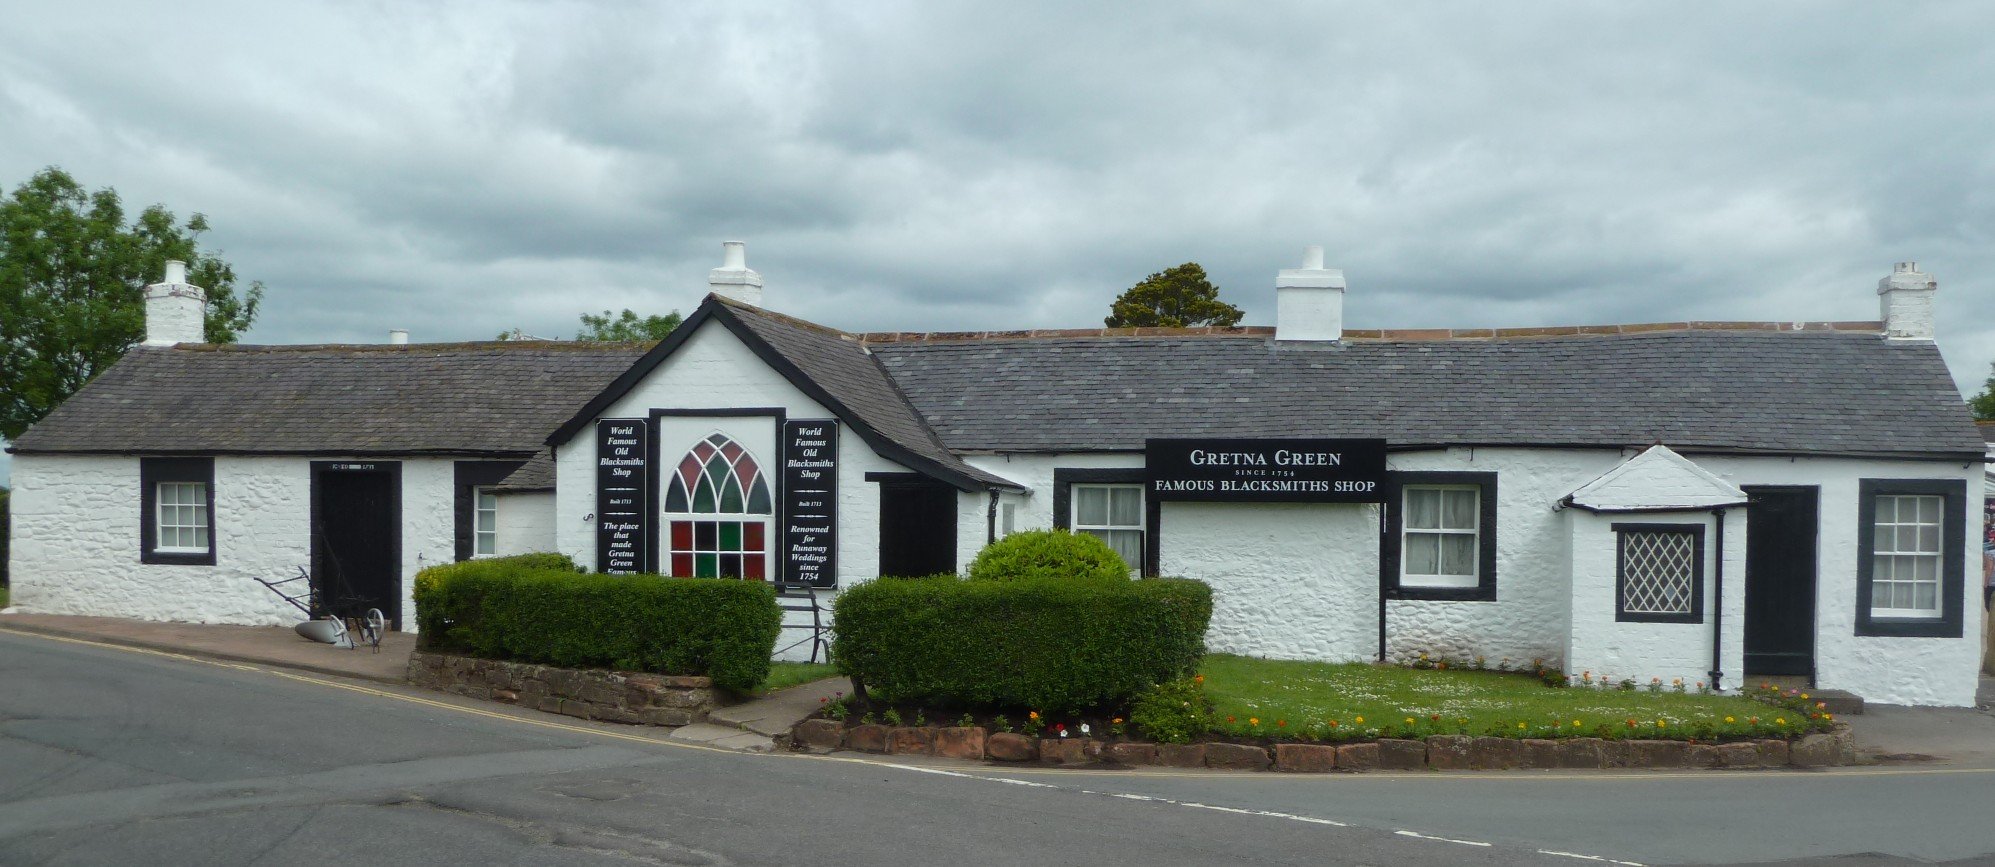 Blacksmiths-Shop-Gretna-Green